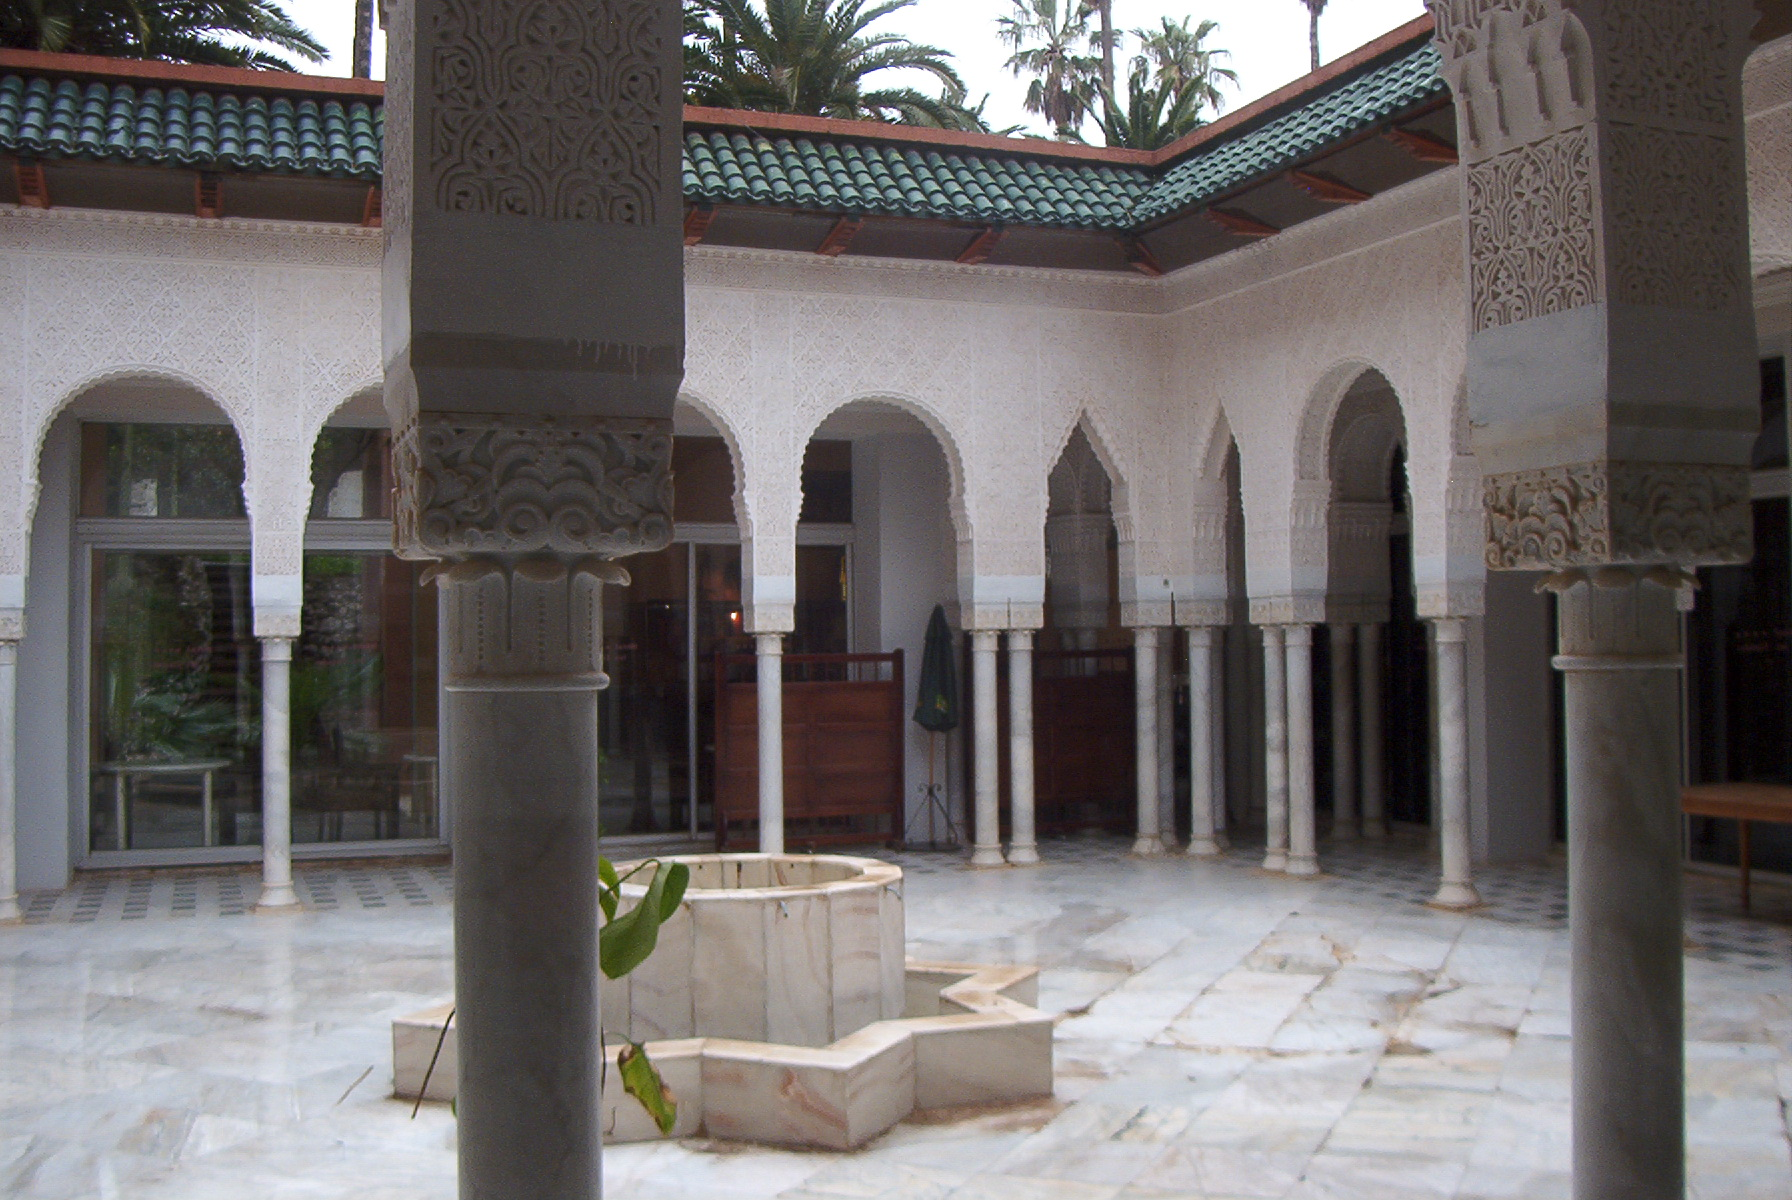 File:Tlemcen Patio des Zianides.jpg - Wikimedia Commons